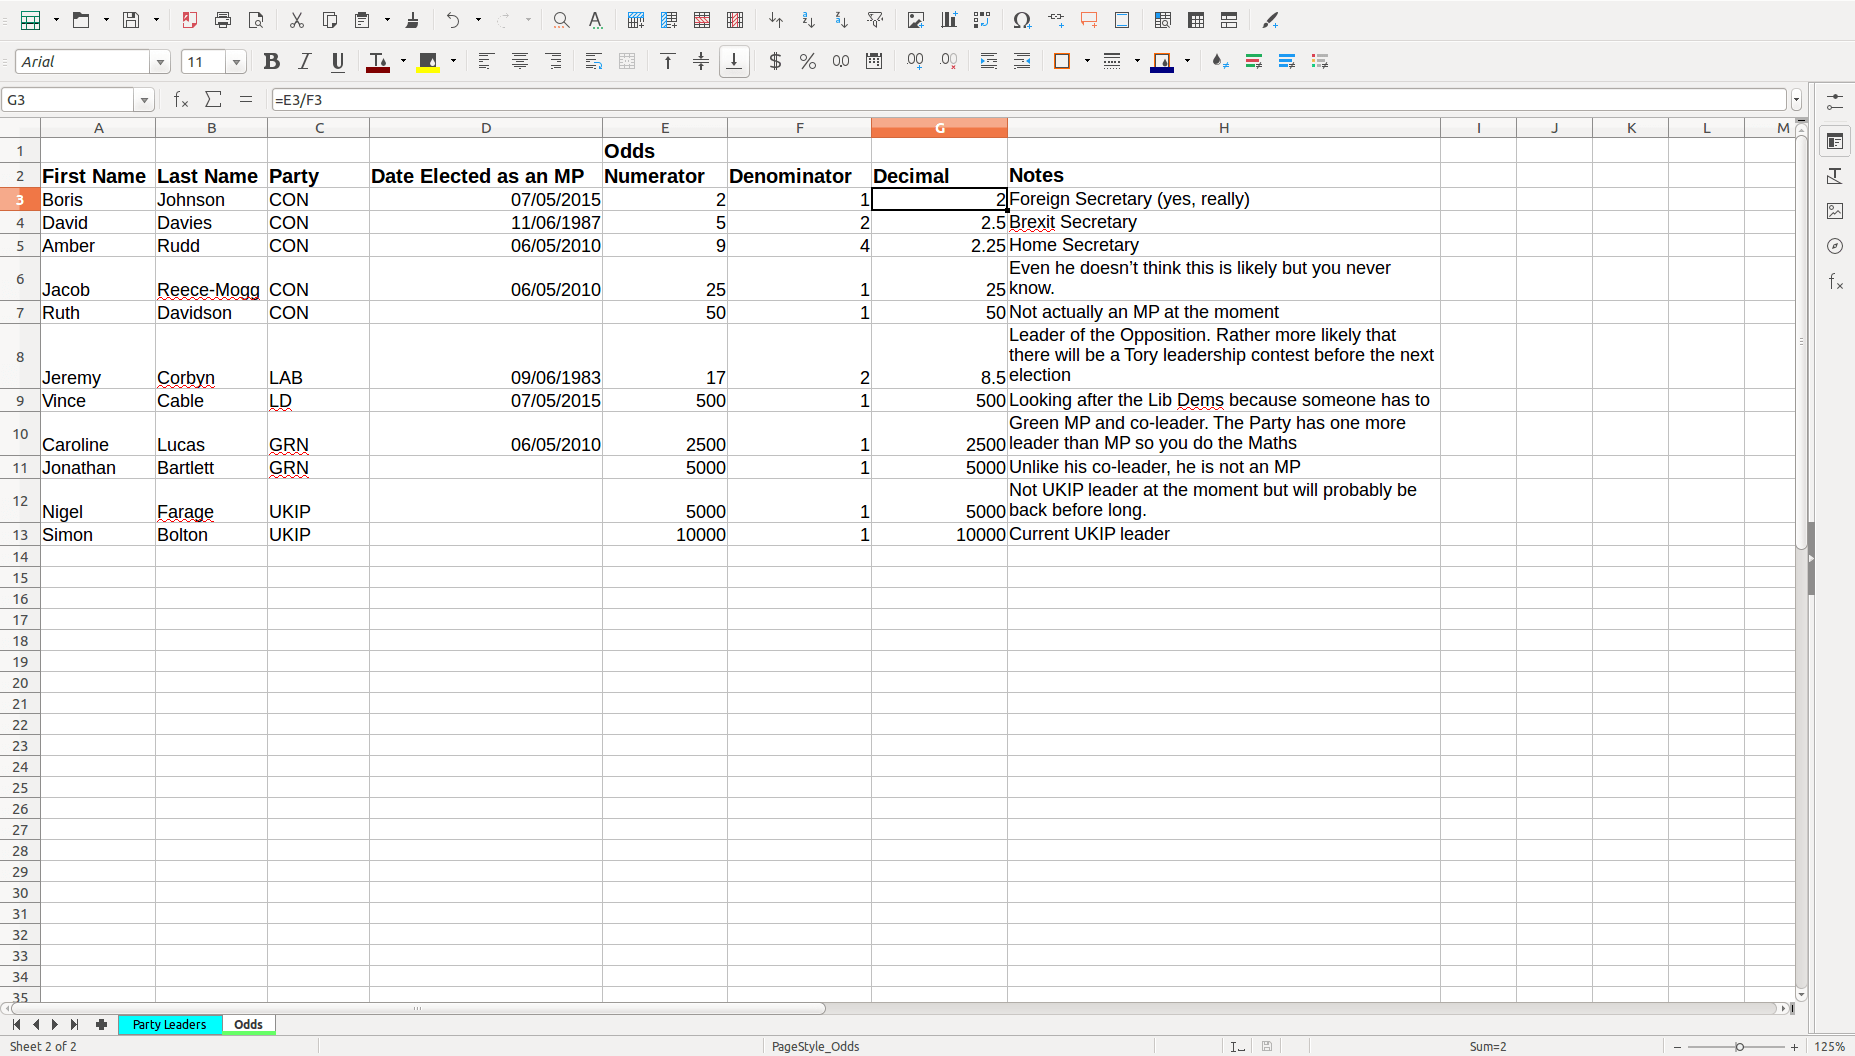 Importing An Excel Spreadsheet Into An Oracle Database With Sqldeveloper